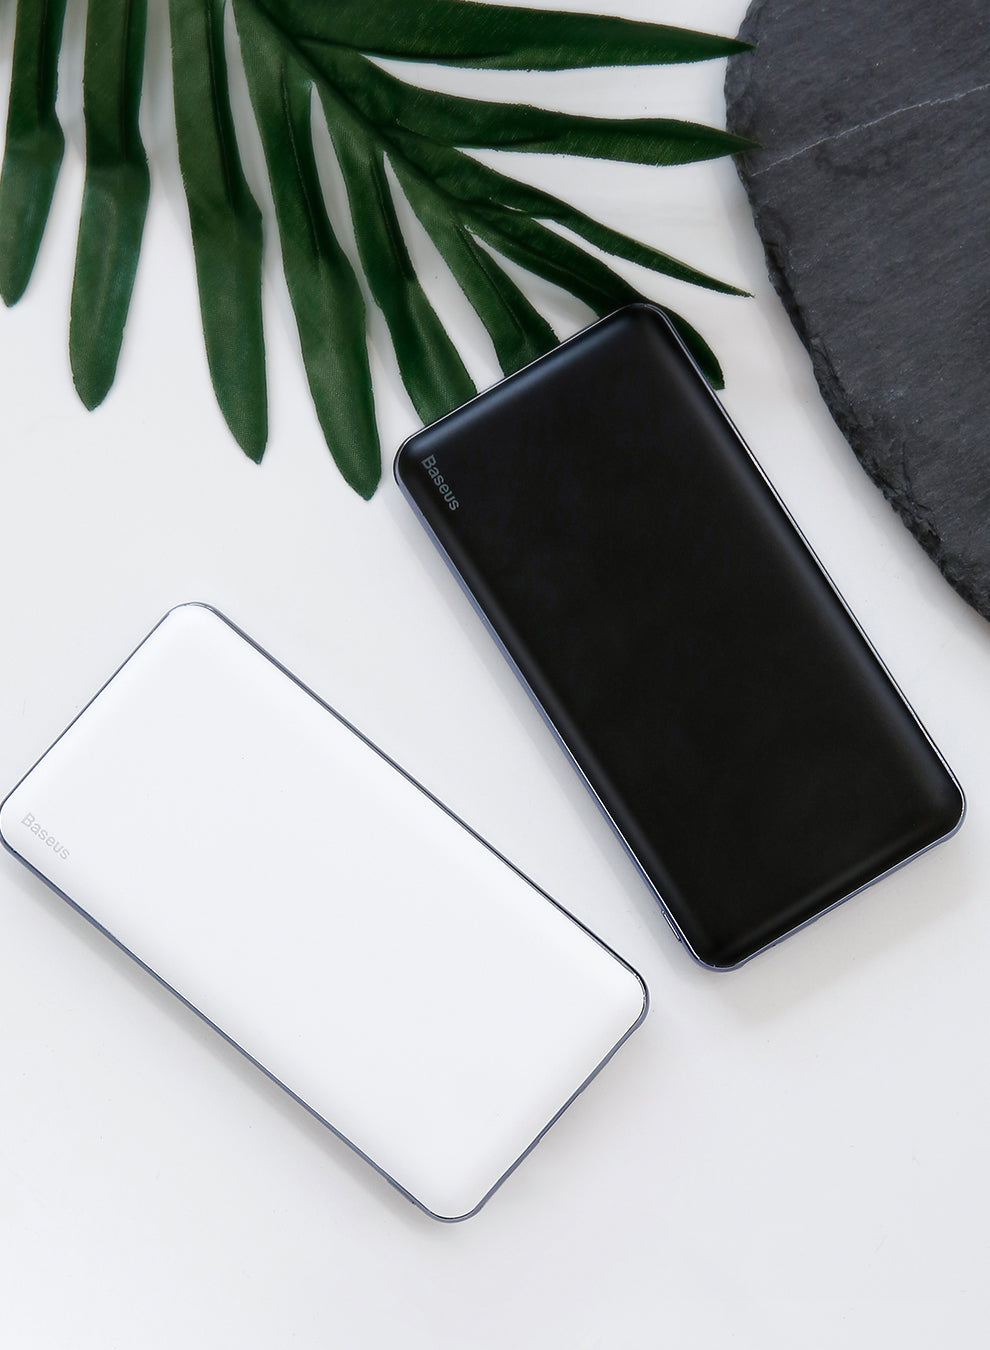 Ultra Portable USB PD Fast Charging Power Bank For iPhone Xs Xs Max XR X 8 8 Plus 3A Quick Charge Slim Power Bank